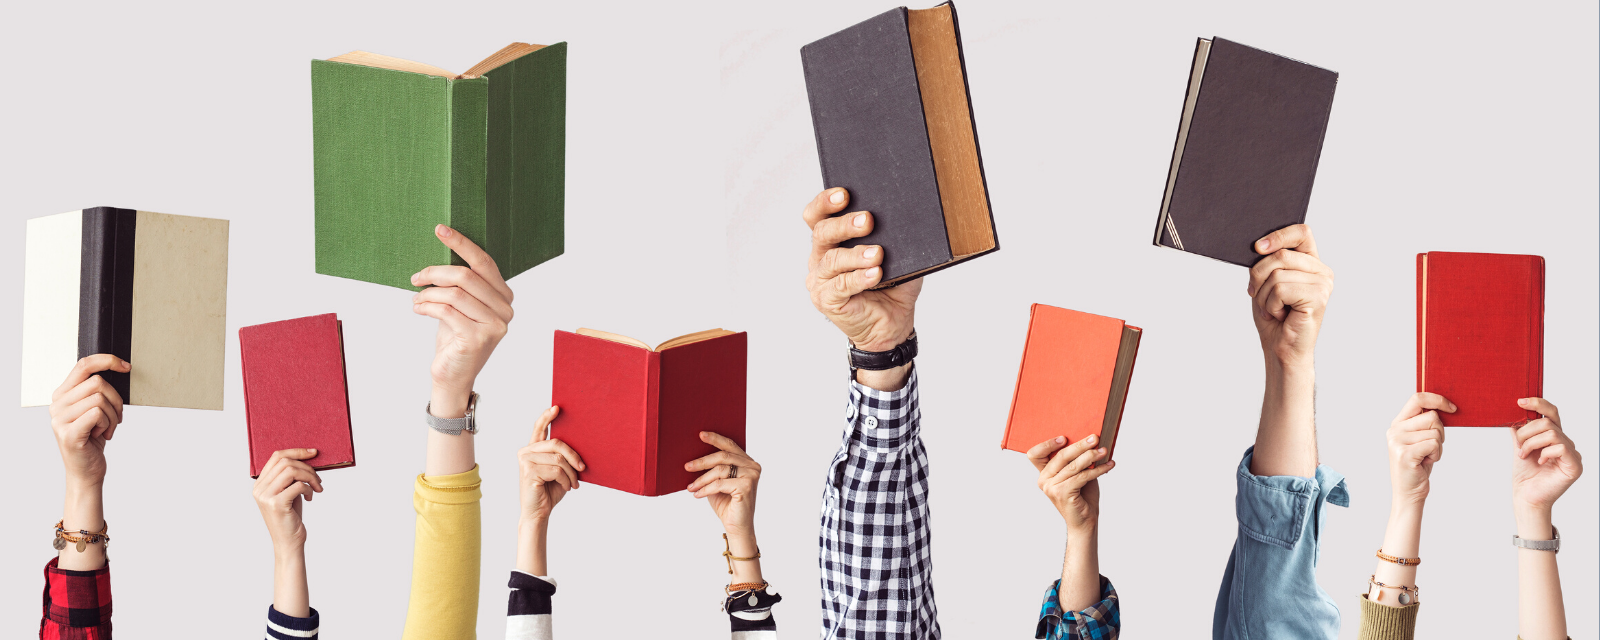 people's arms sticking up each holding a different book